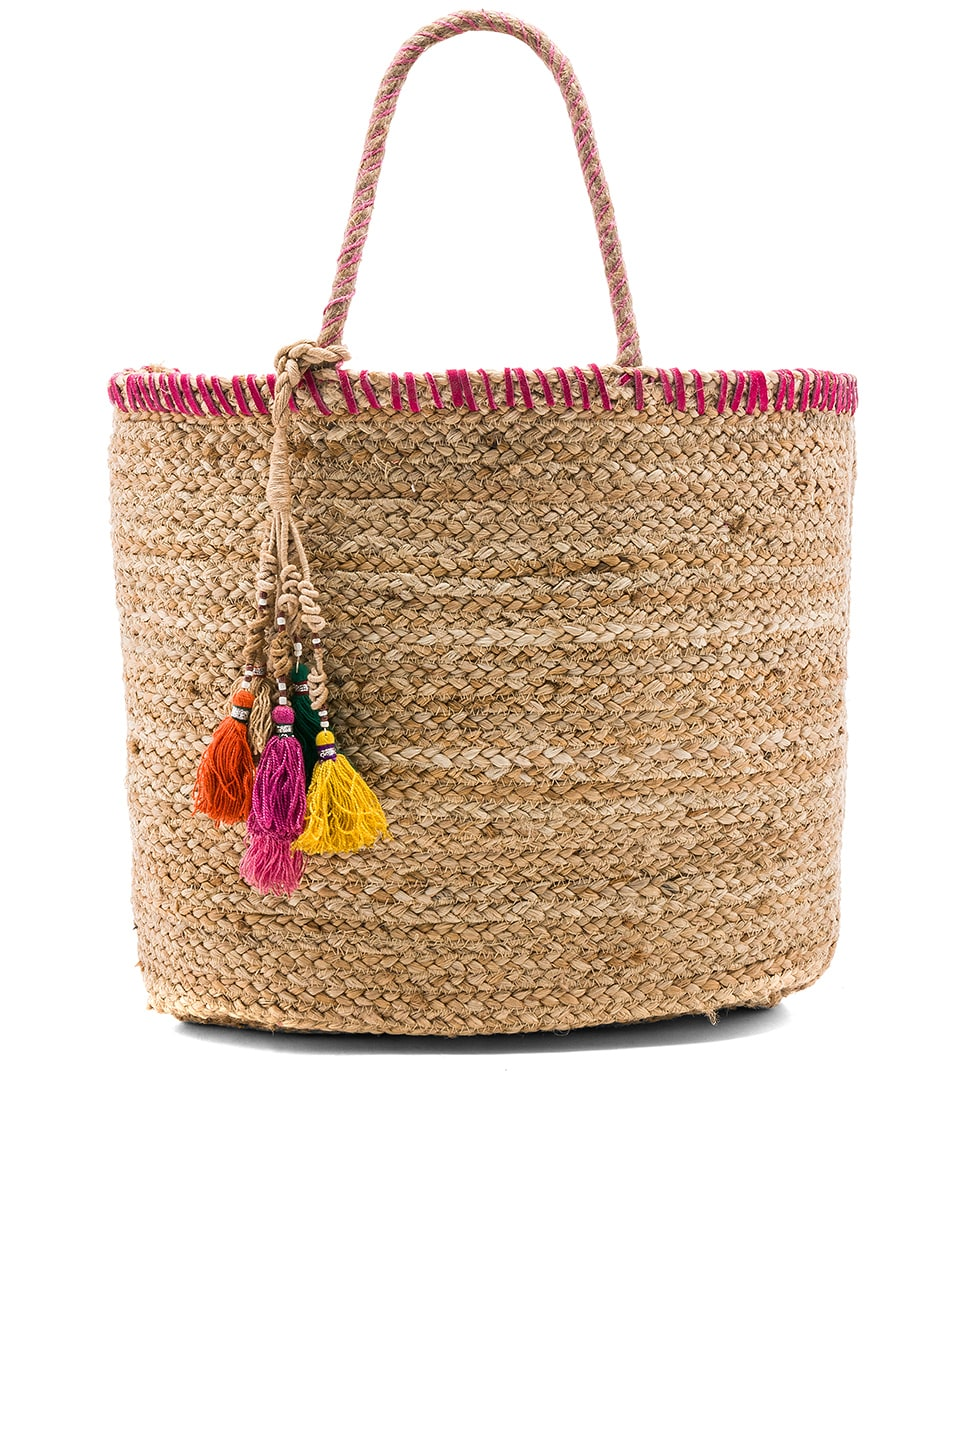 Agua Bendita Serena Bag in Natural